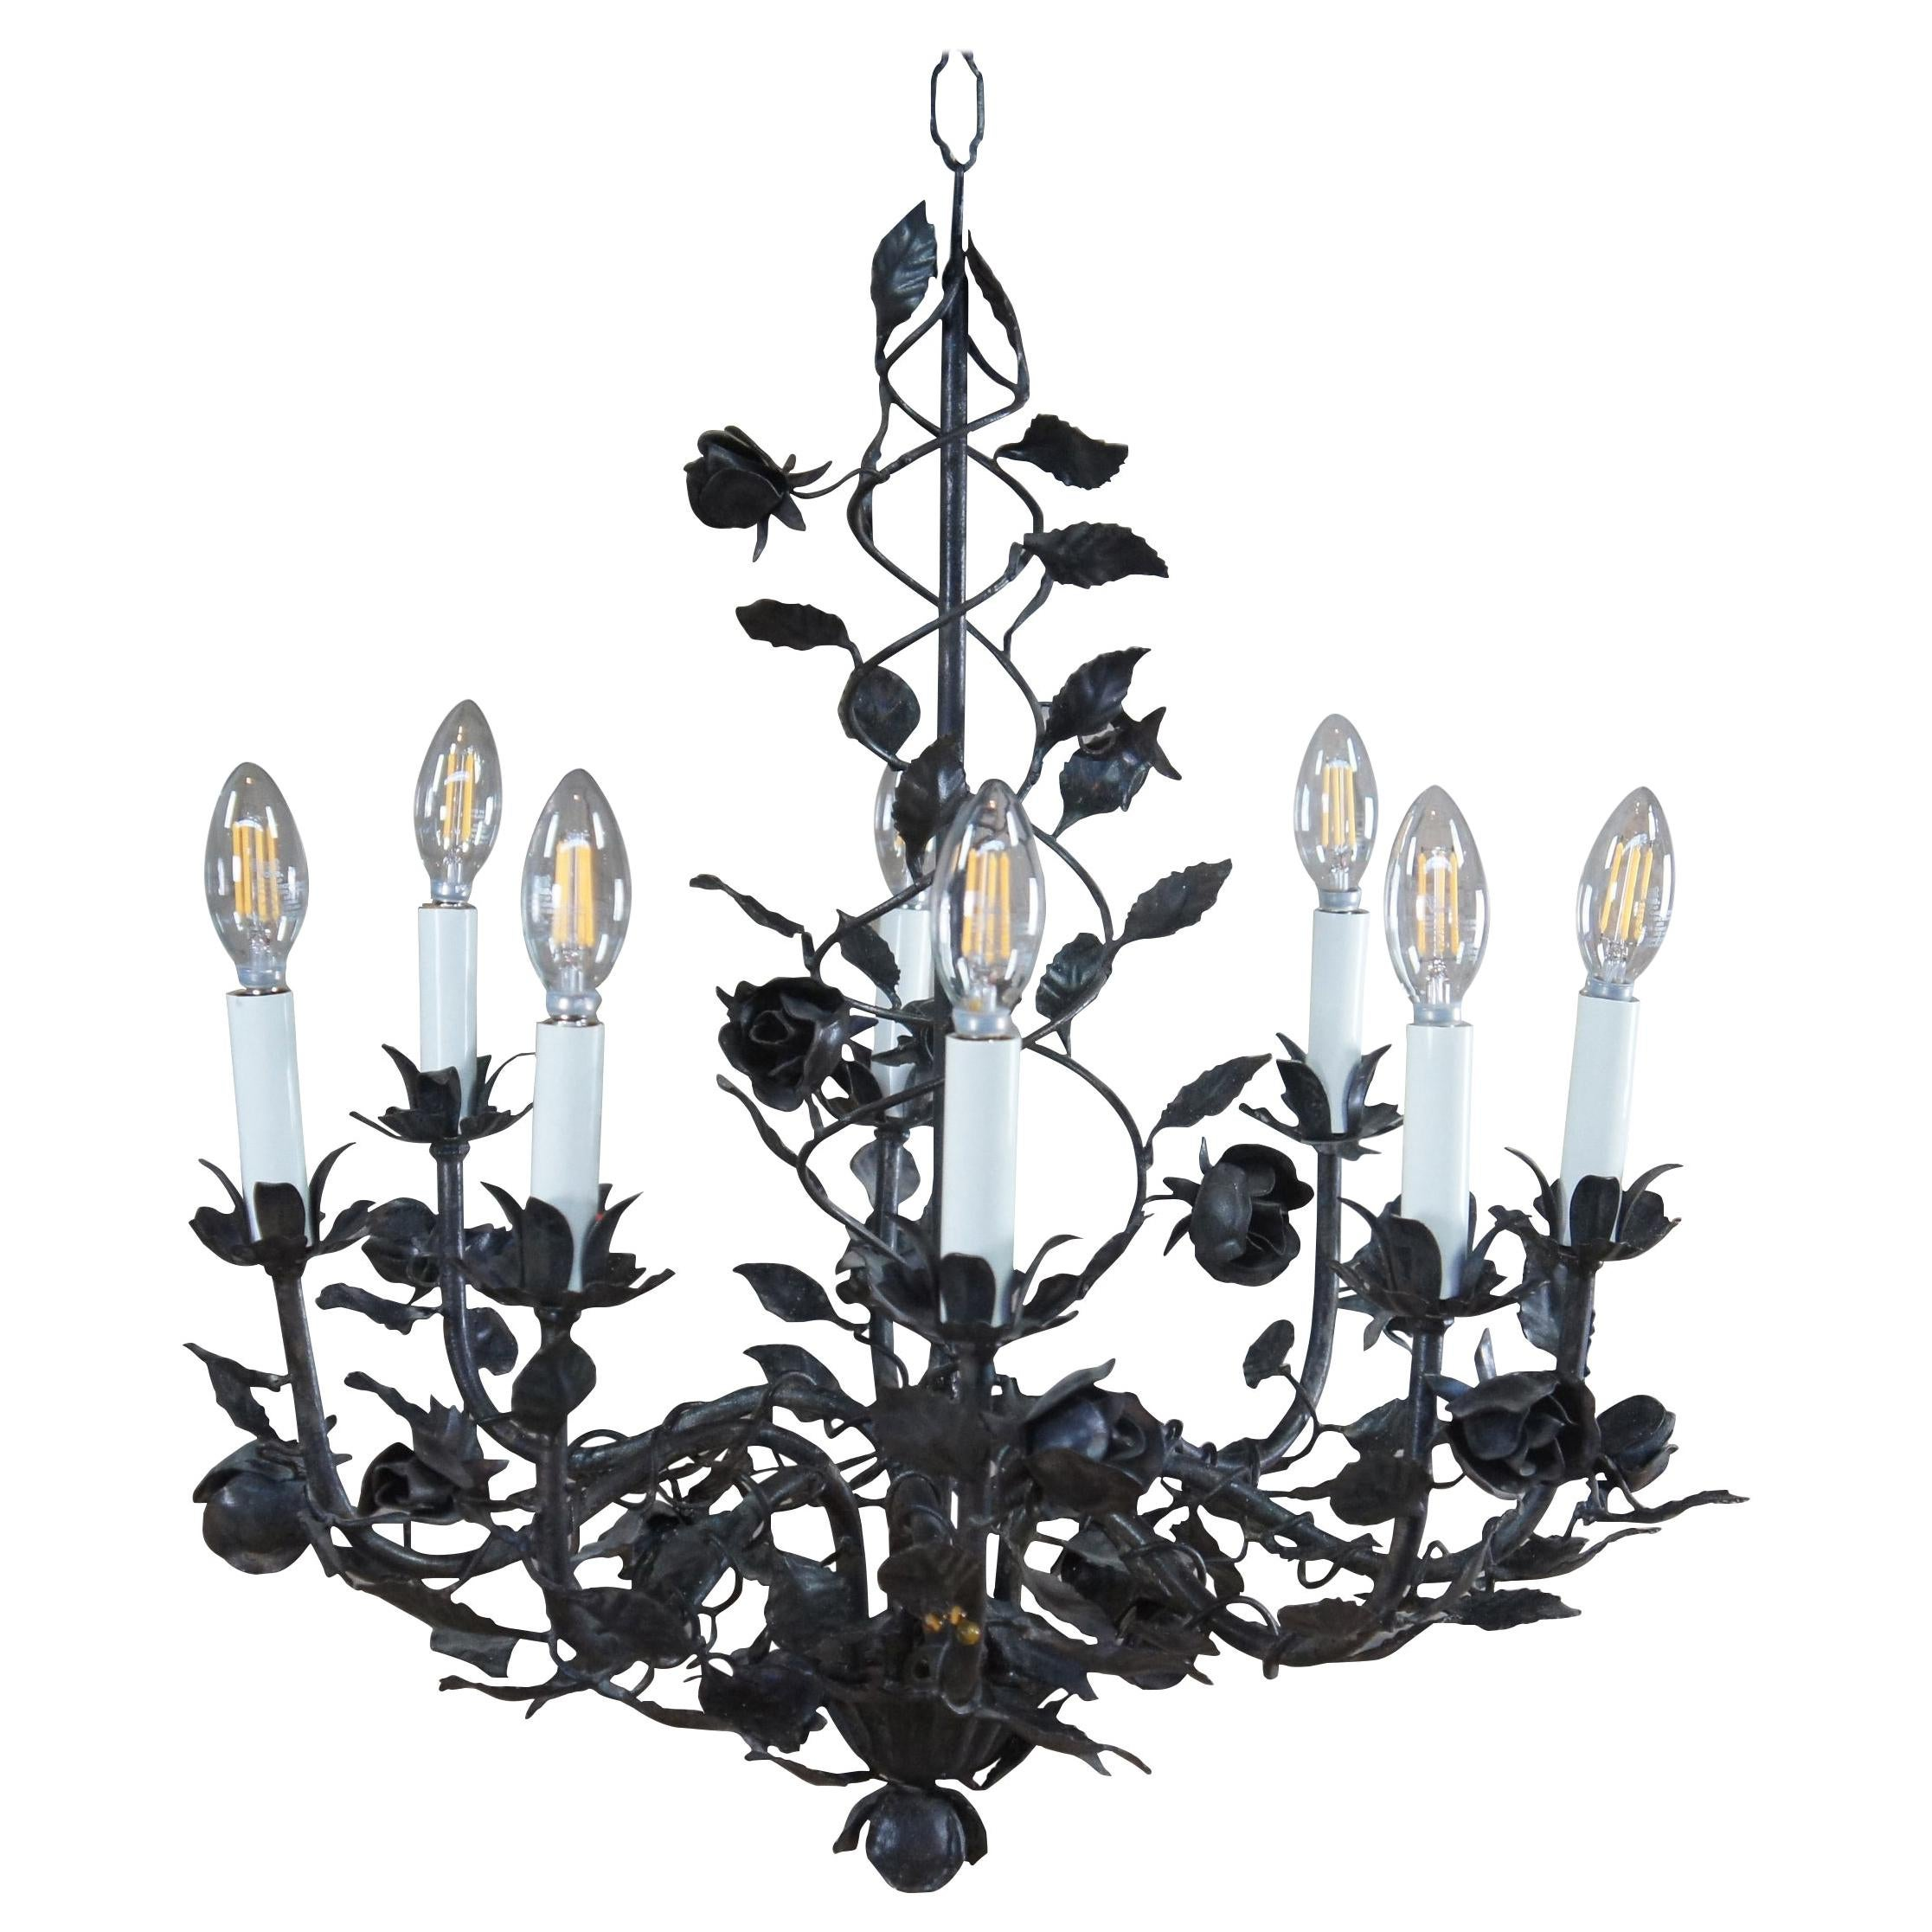 Wrought Iron 8 Arm Floral Twisted Roses Chandelier Pendant Light, French